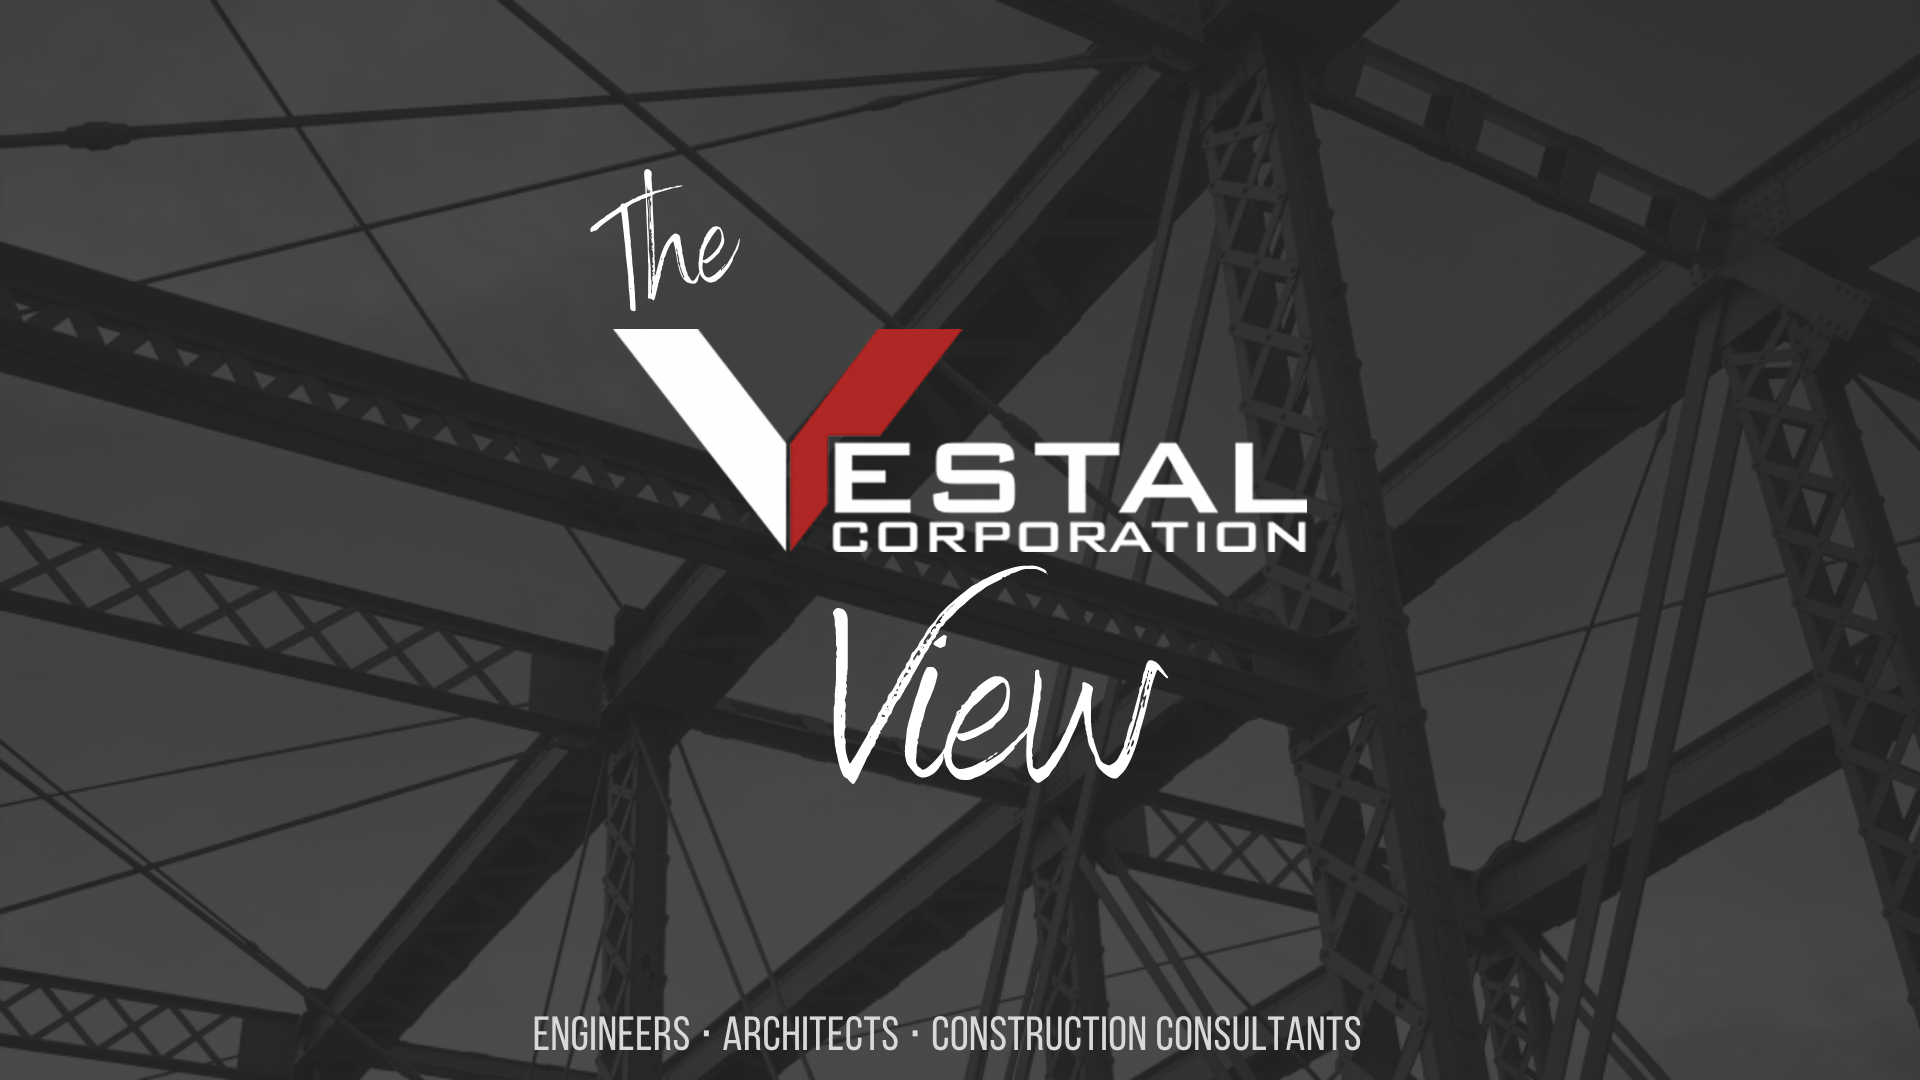 The Vestal View | Vestal Corporation - Engineers | Architects | Construction Consultants Newsletter